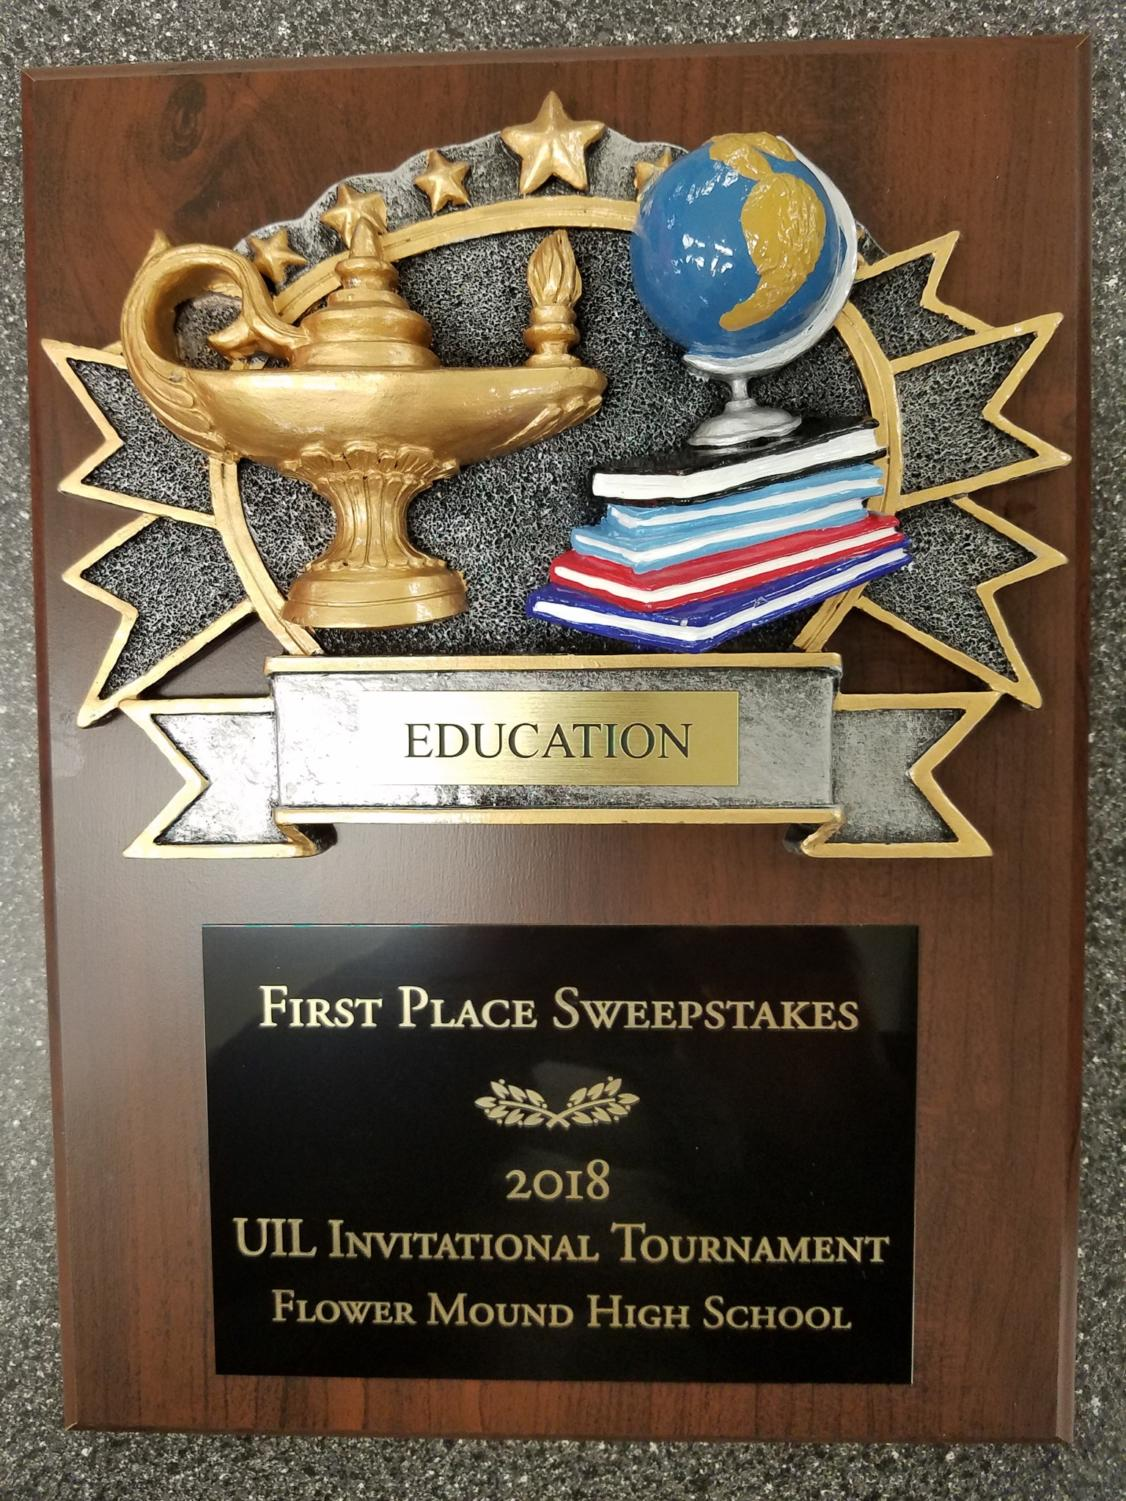 Academic UIL team members bring home a first place title on Jan. 13, 2018 at Flower Mound High School in Flower Mound, TX. (Stacy Short/The Talon News)